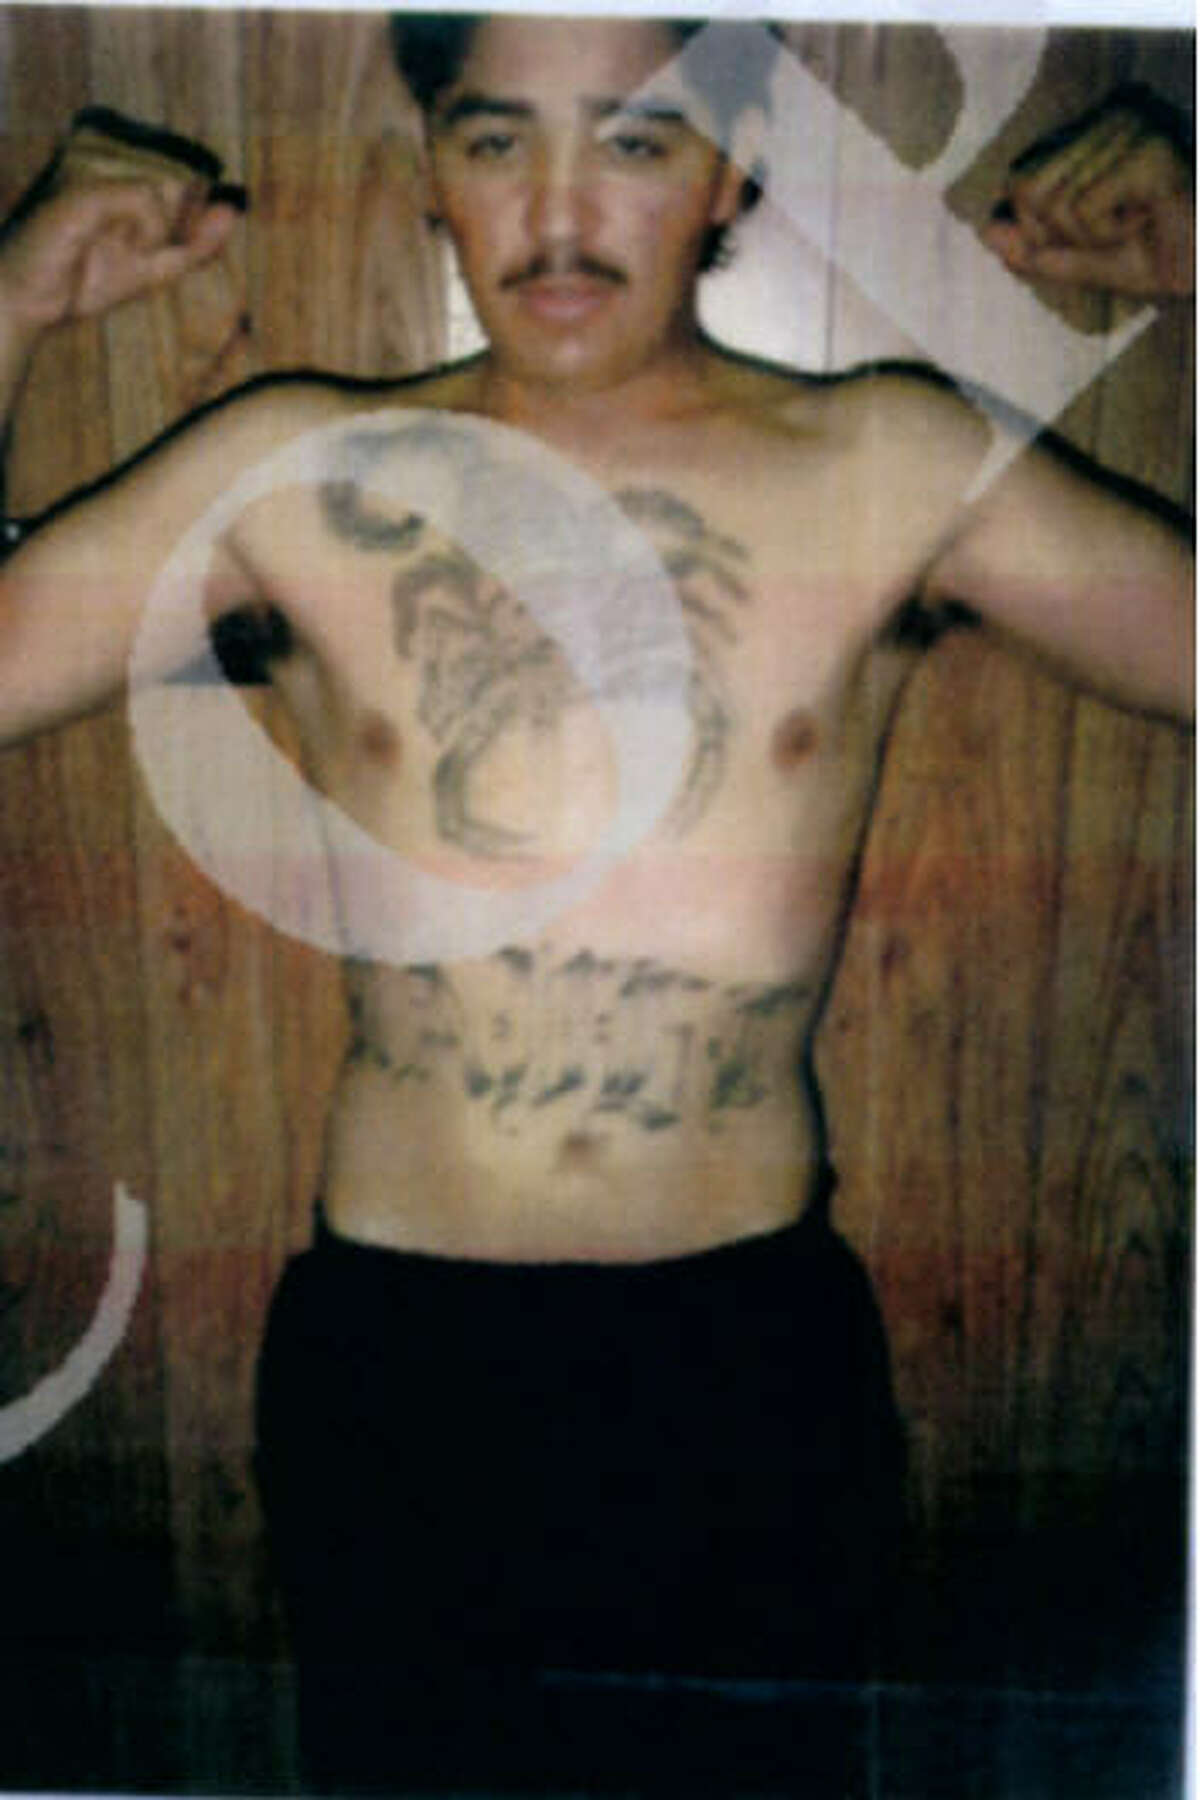 Changing appearance The FBI believes that Eduardo Ravelo, who is wanted on murder and drug charges, may have had surgery to change his appearance. In the photo above from 1992, he appears heavily tattooed.